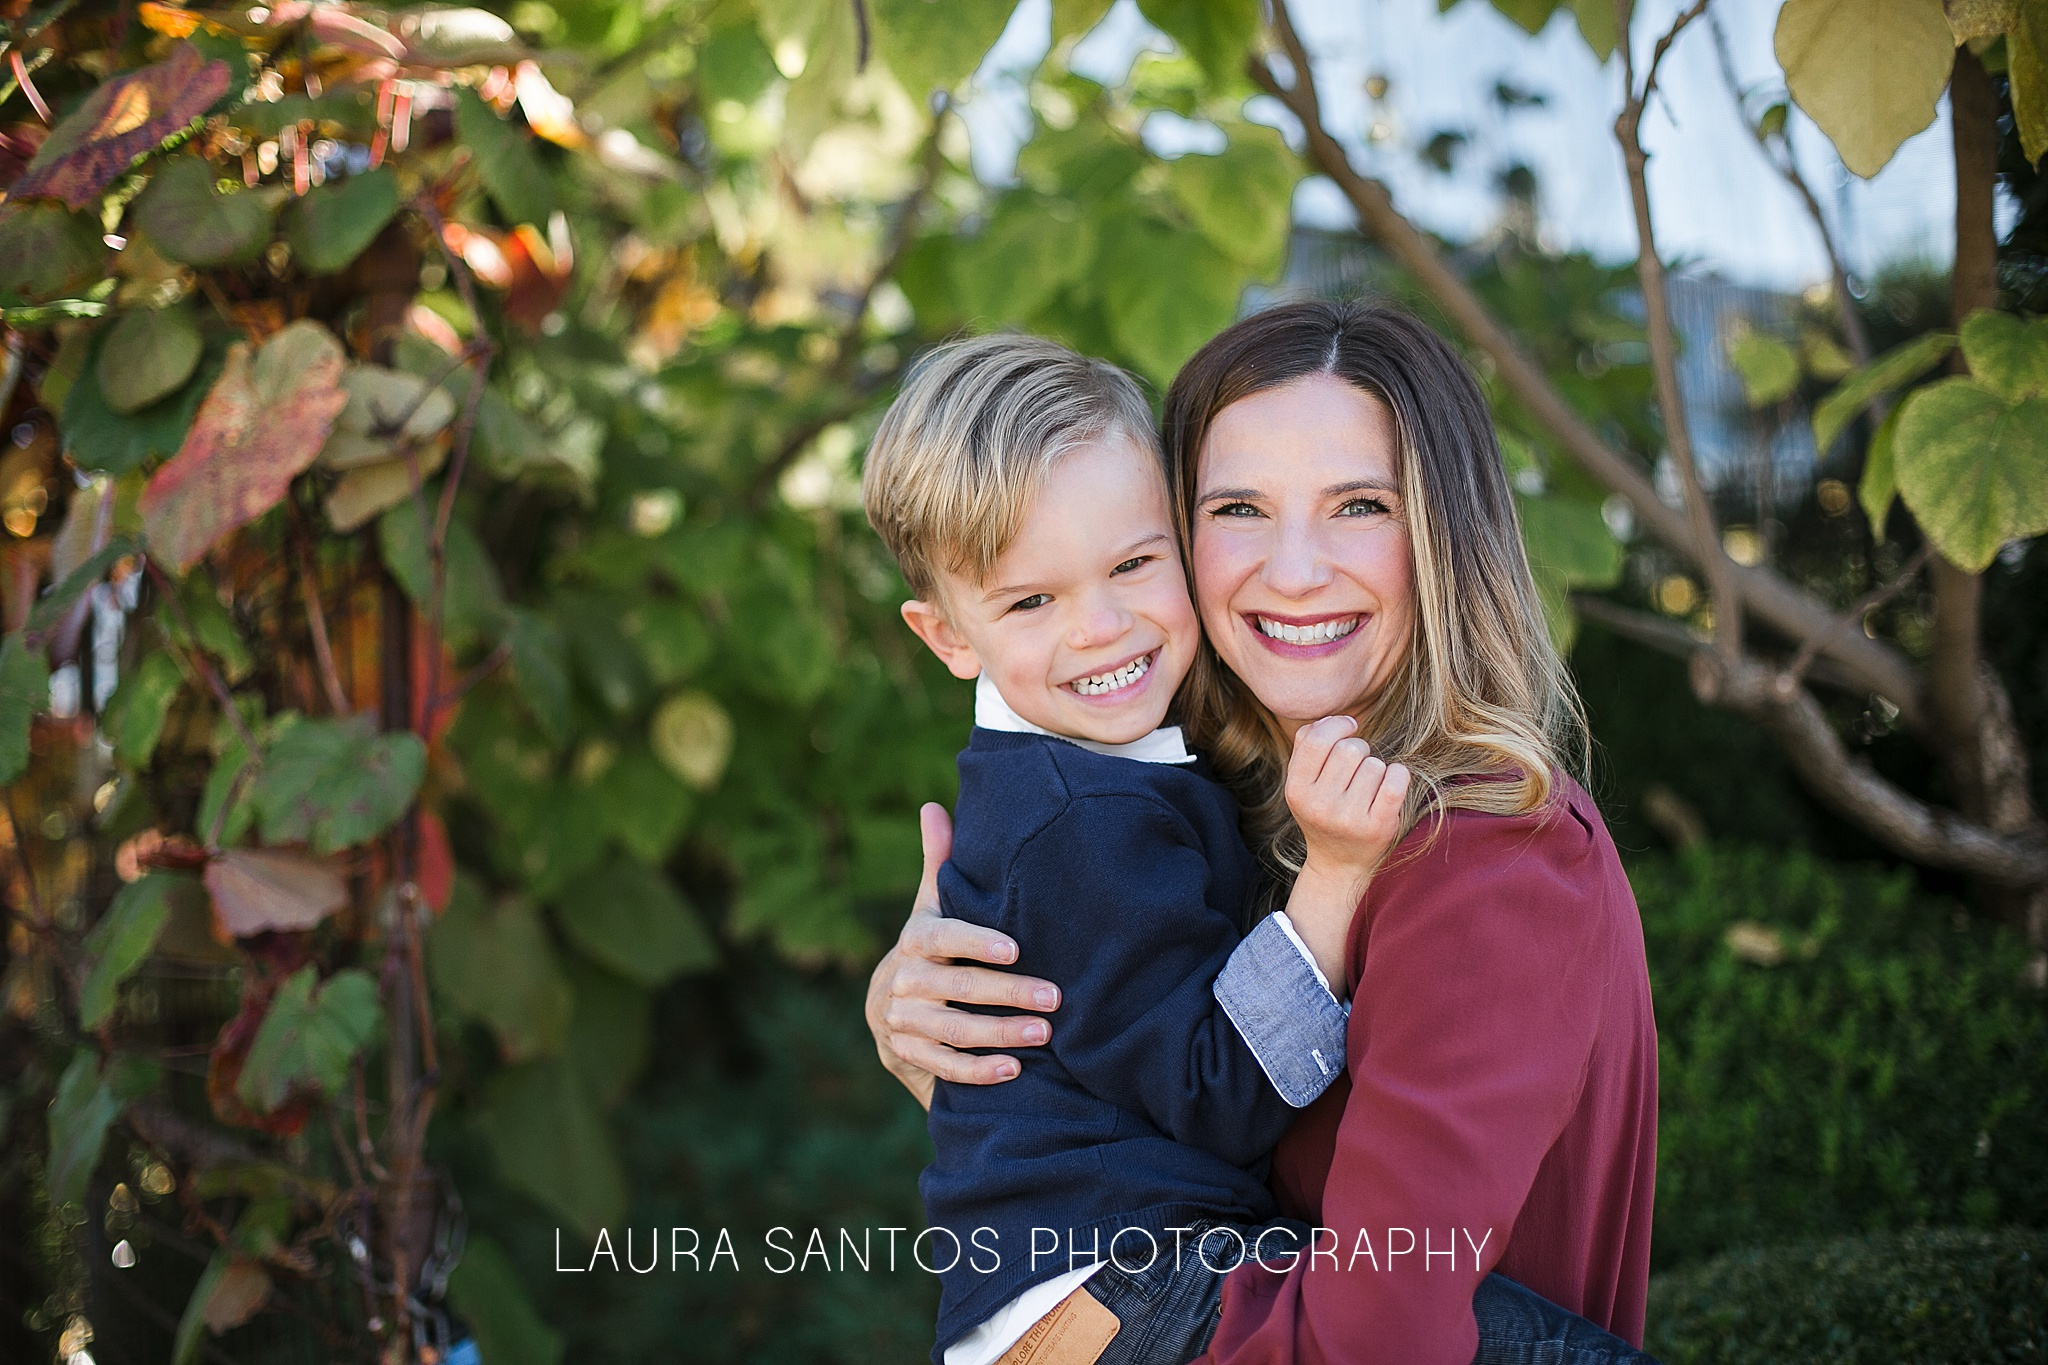 Laura Santos Photography Portland Oregon Family Photographer_0637.jpg